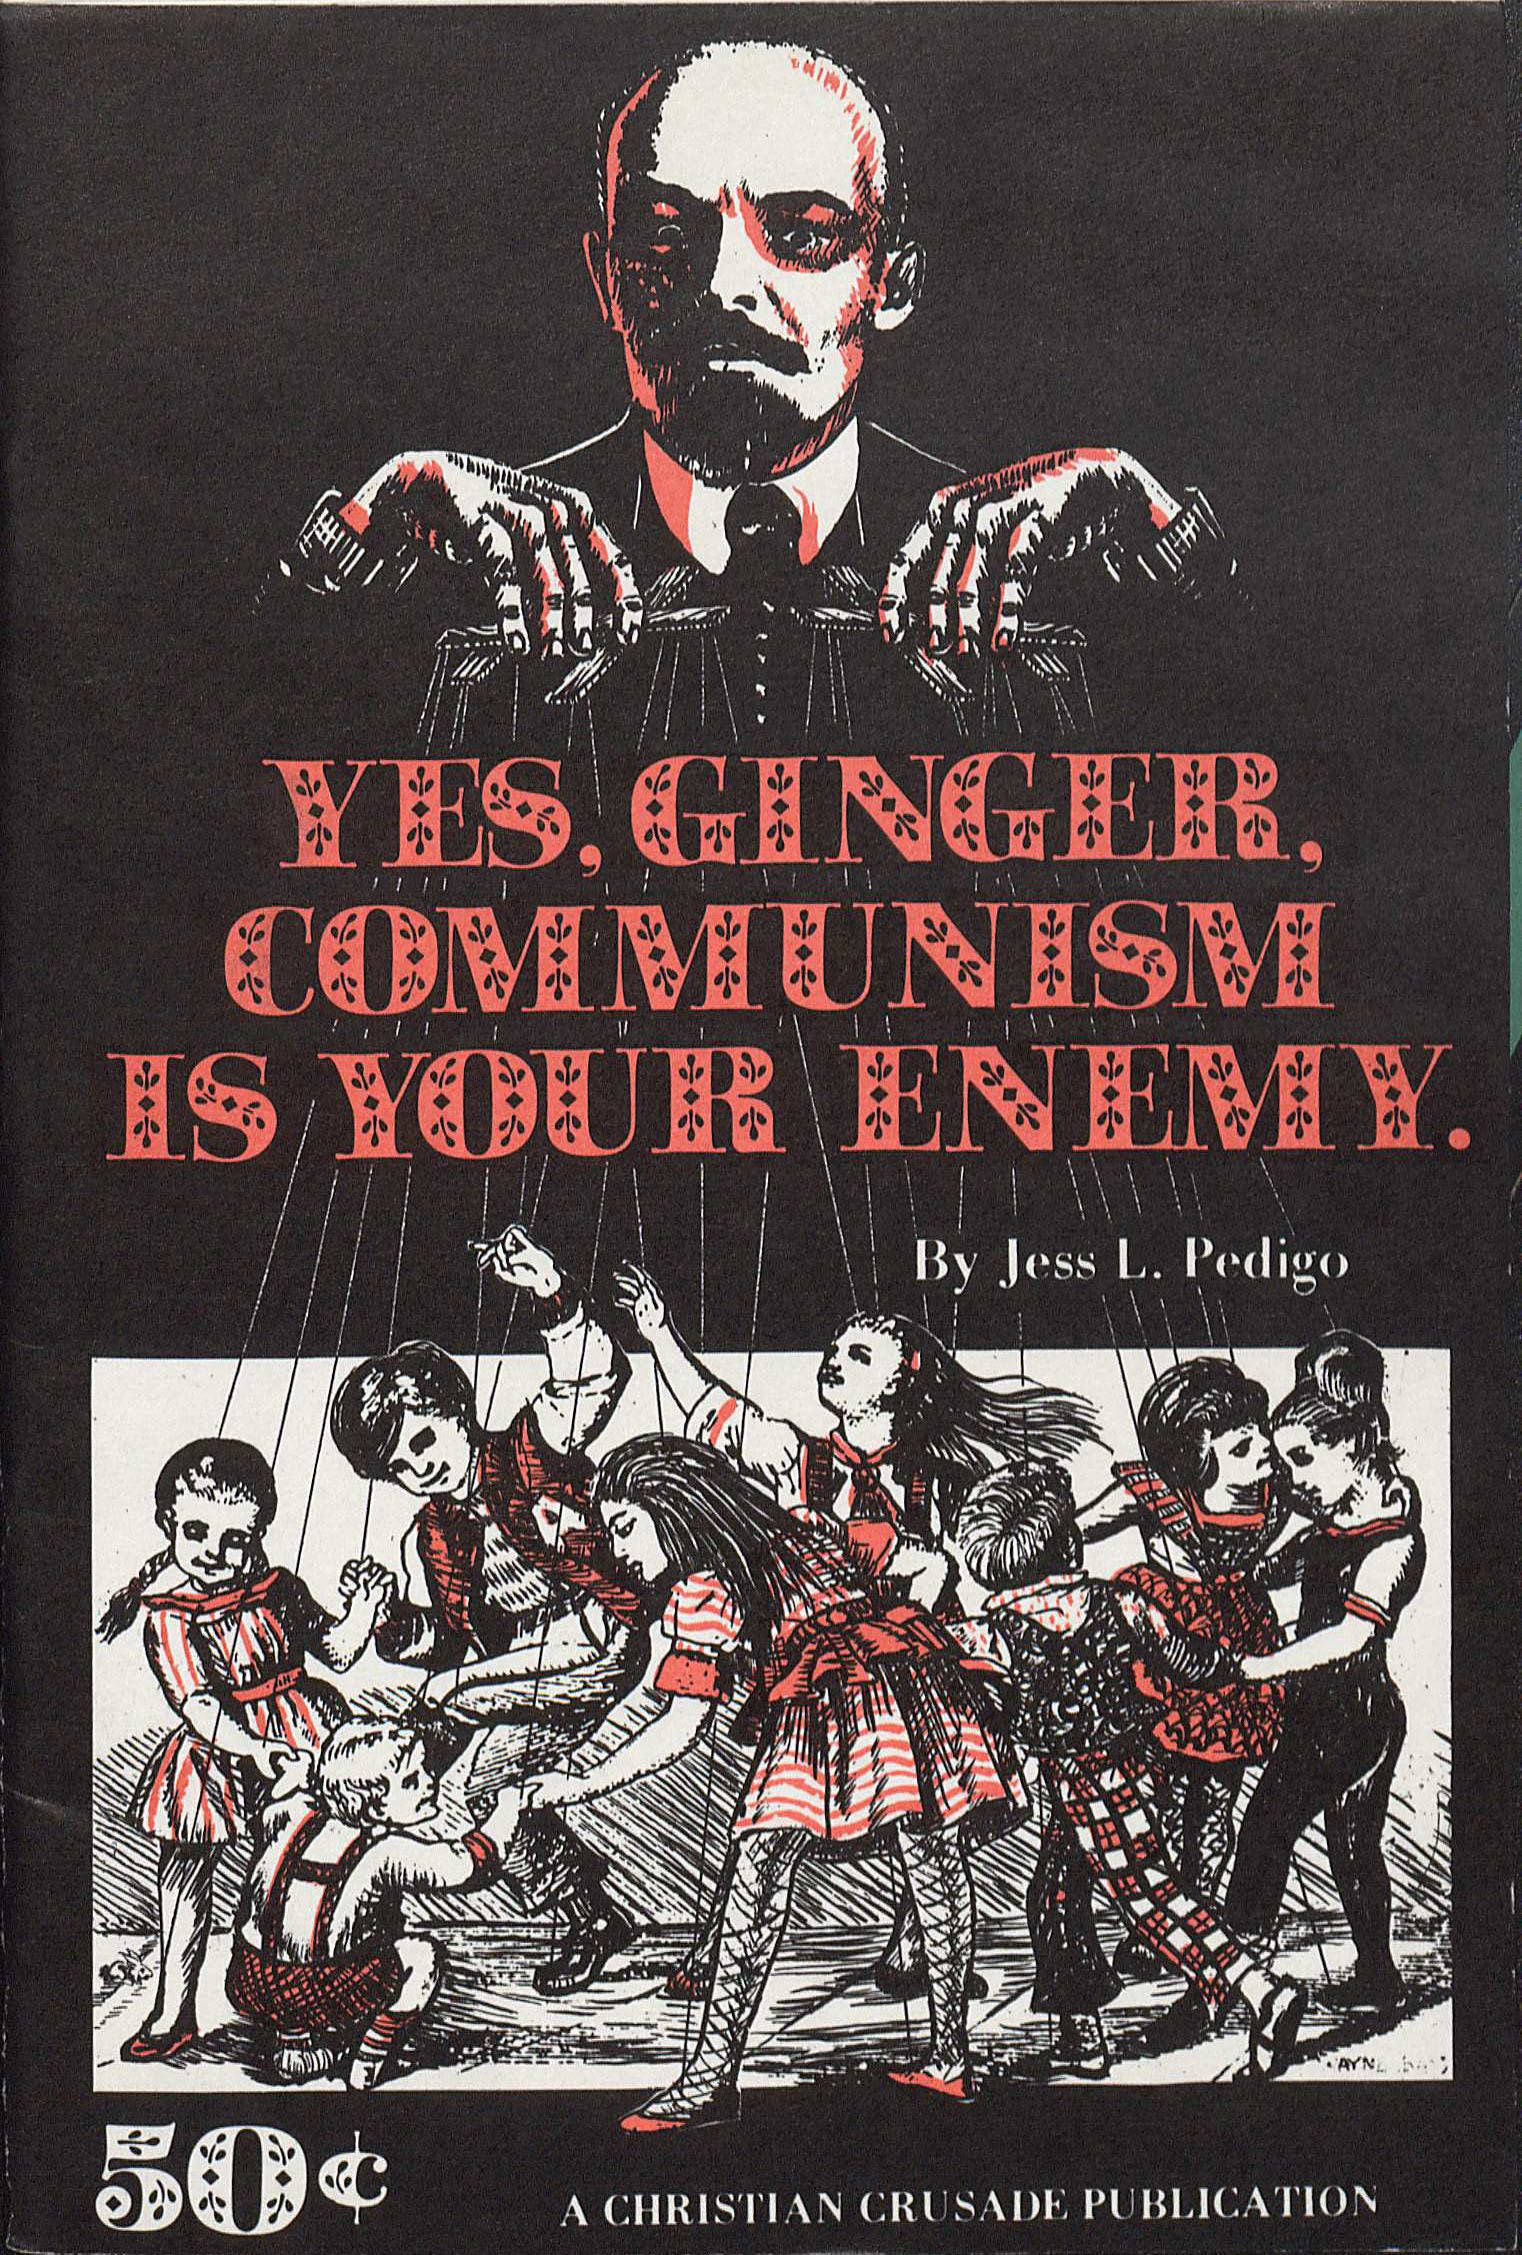 Book Telling The Public About The Dangers Of Communism